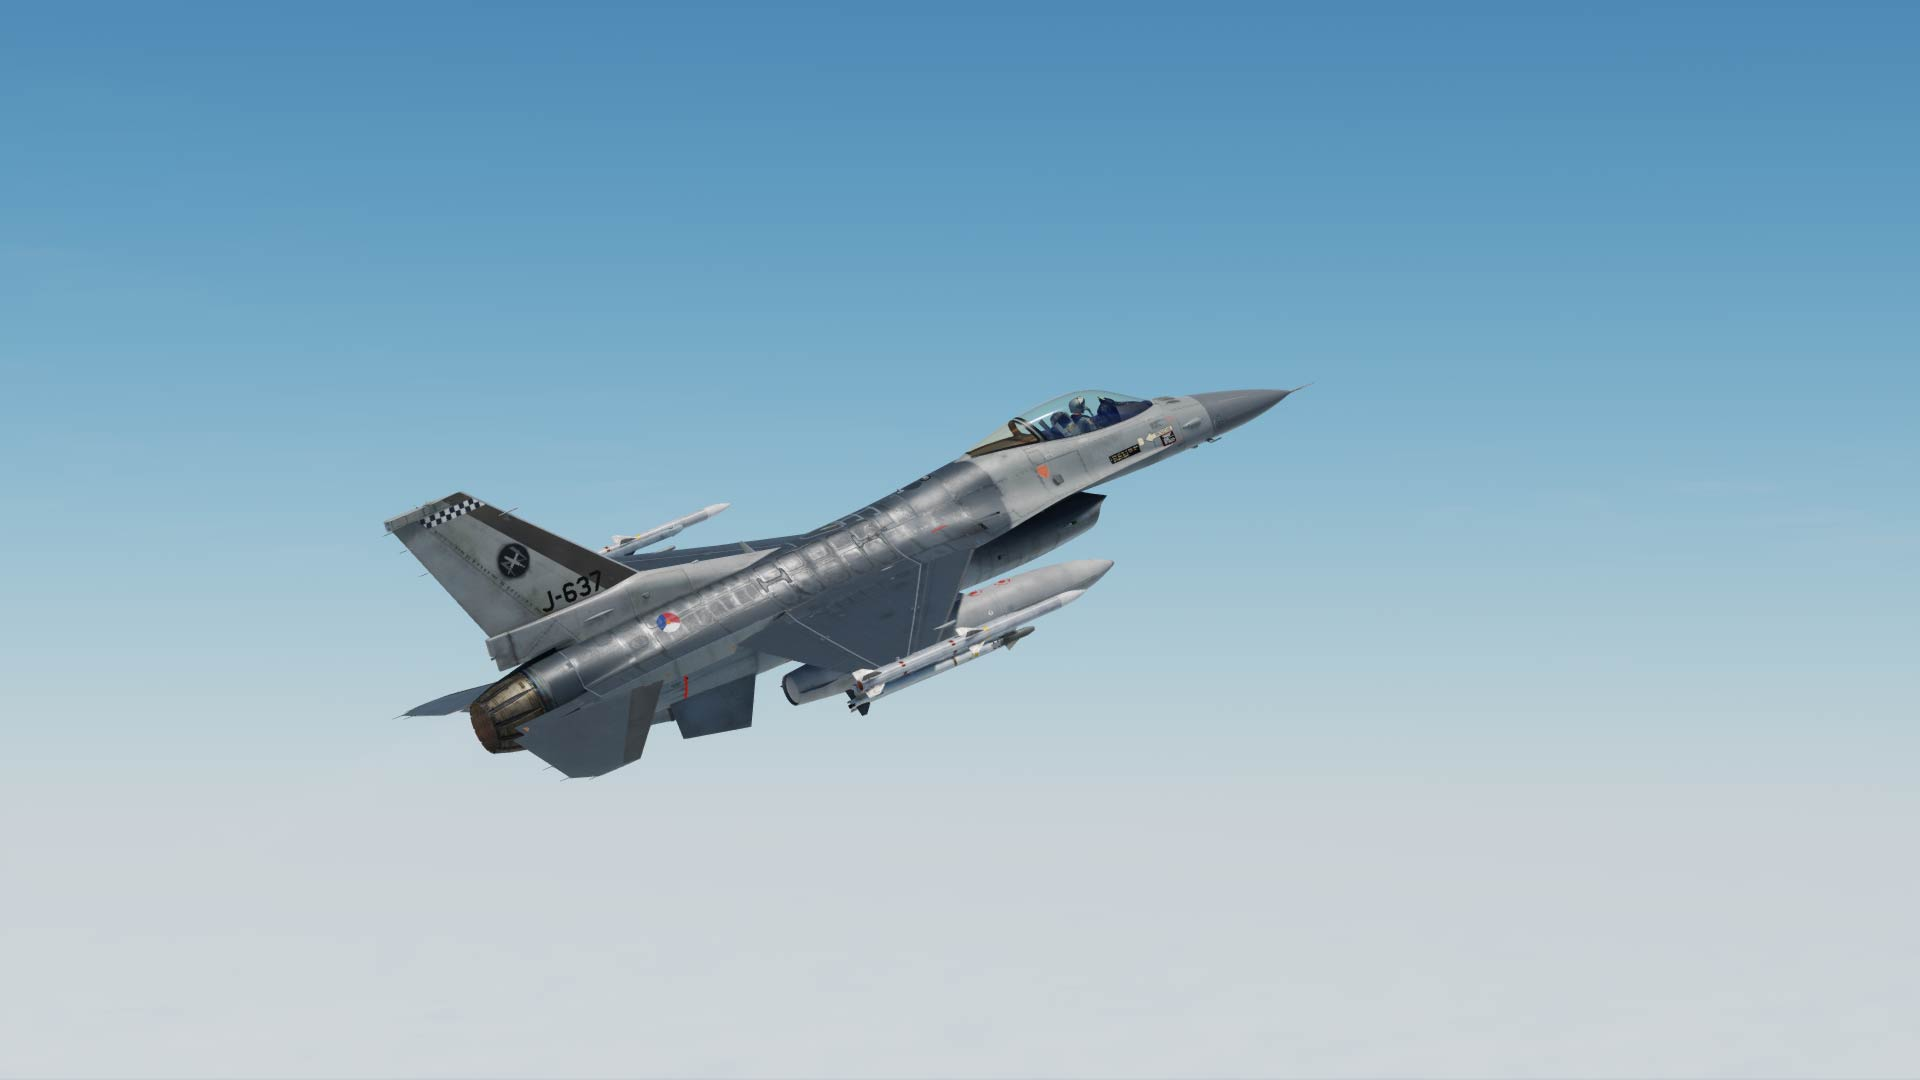 F-16 Dutch Klu 312 SQN J-637